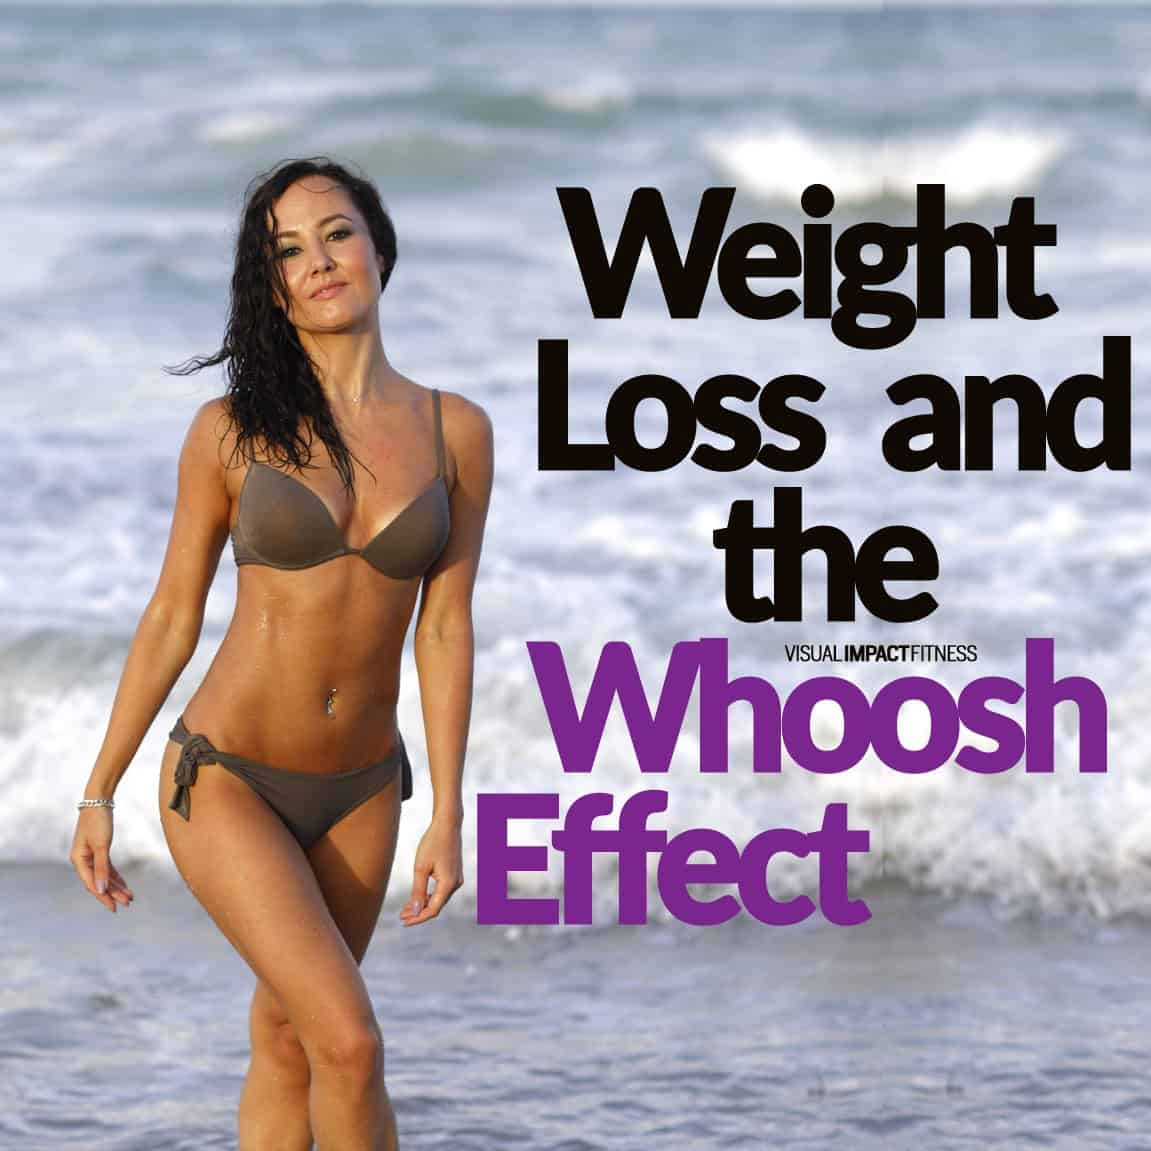 Weight Loss and The Whoosh Effect (2)